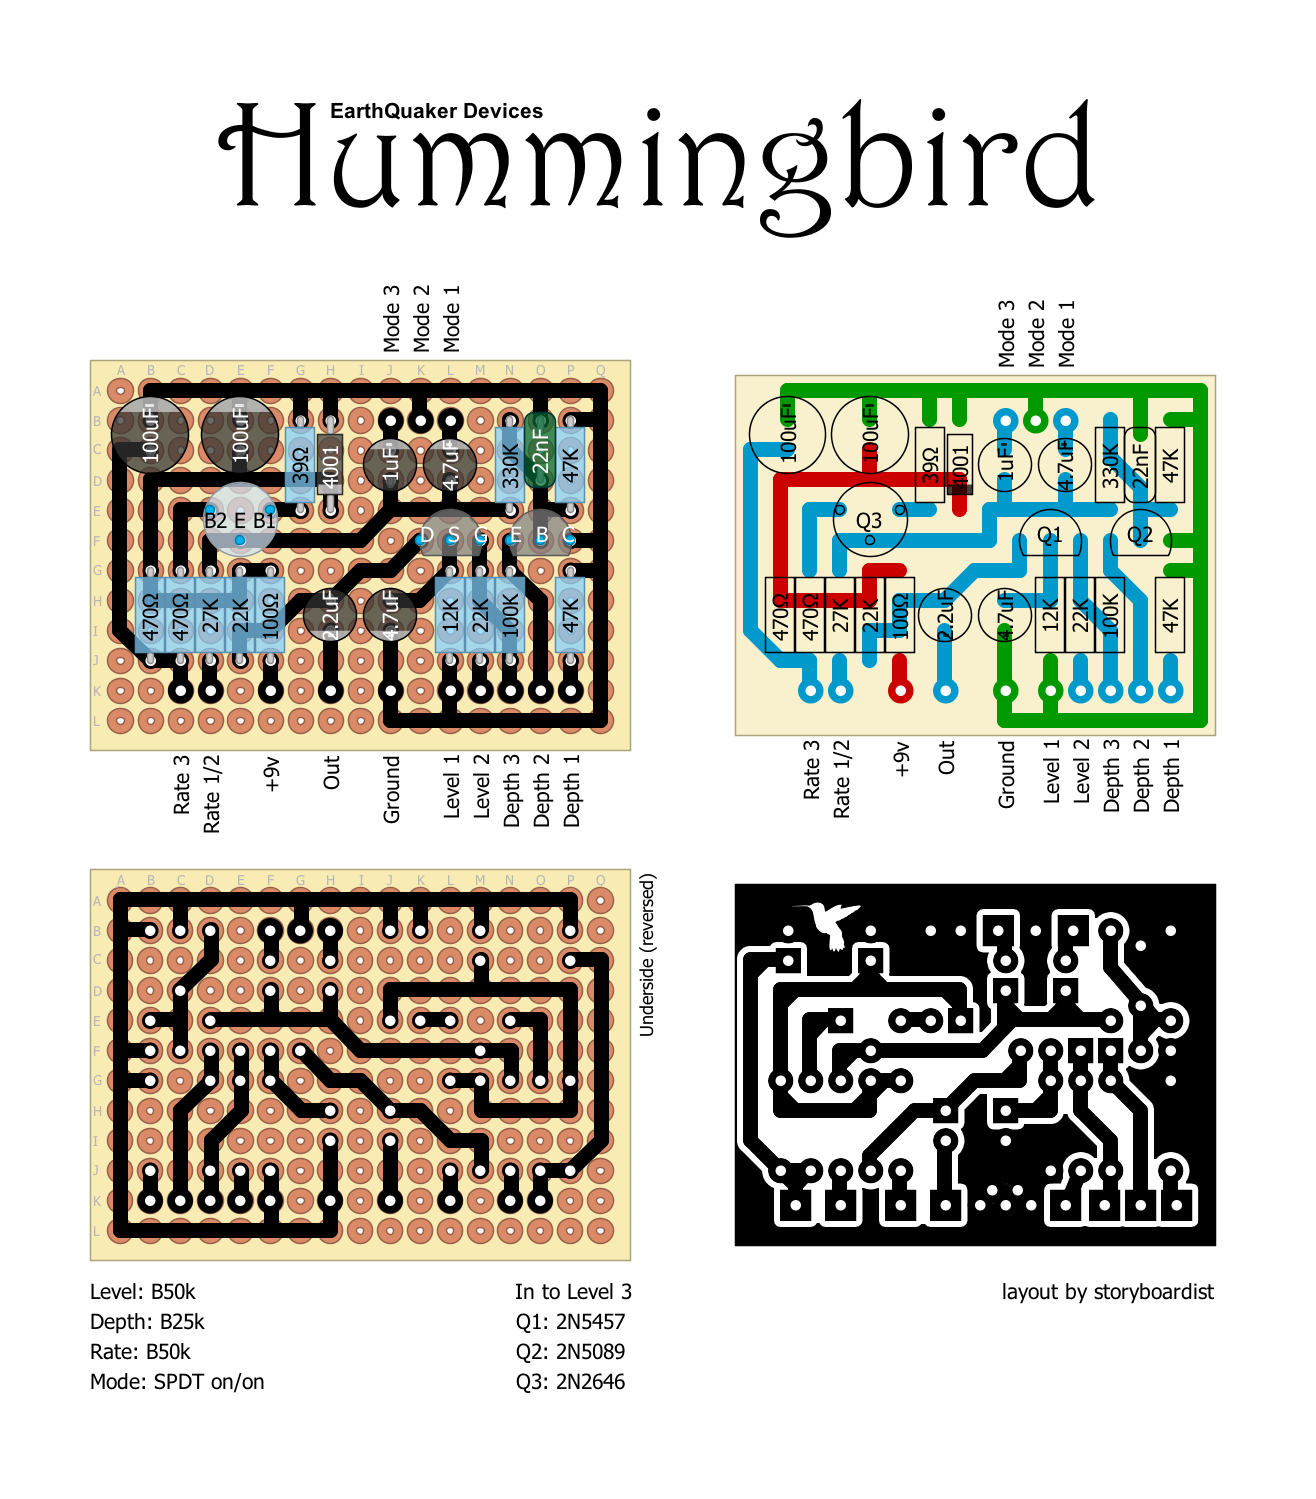 small resolution of  schematic for this one and ended up just tracing the vero layout from the tagboard effects blog so here you go internet the schem for the hummingbird